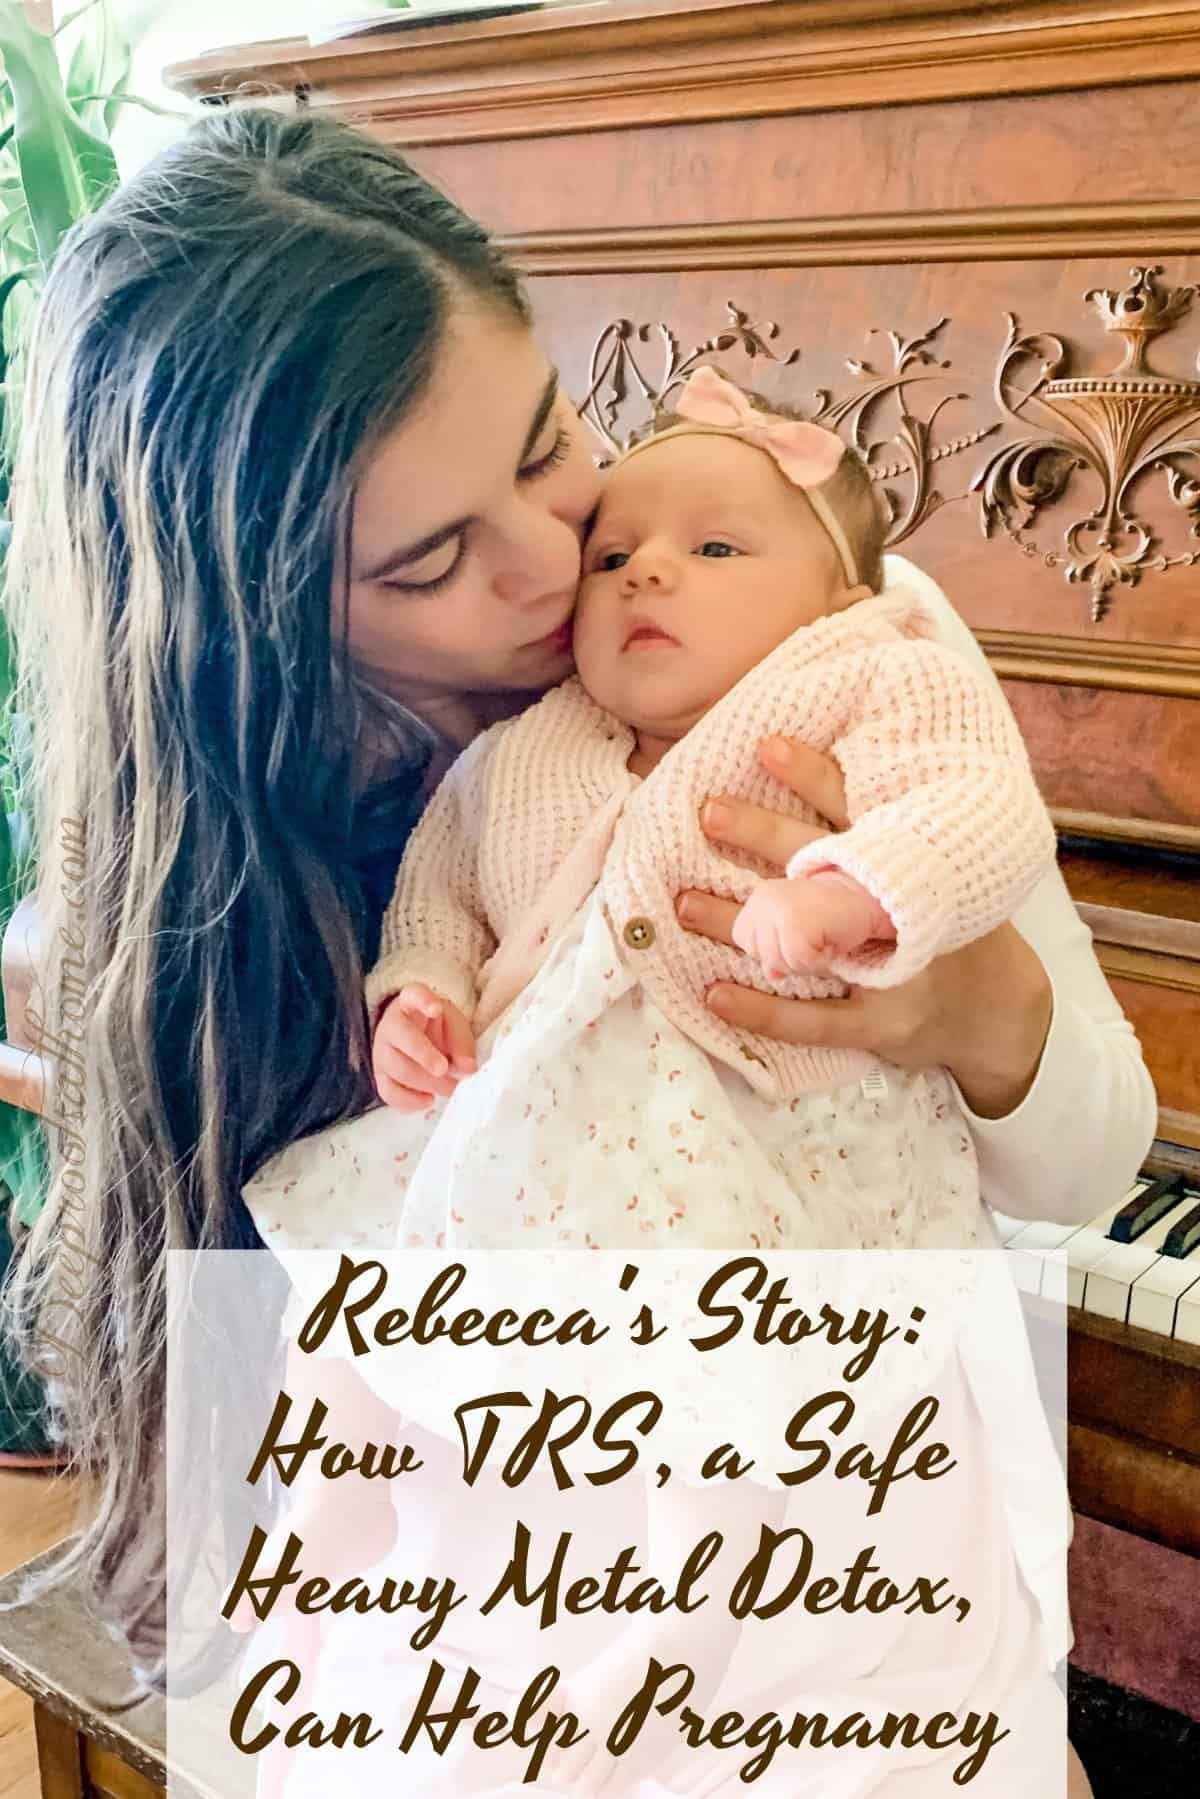 Rebecca's Story: TRS, a Safe Heavy Metal Detox, Can Help Pregnancy. Kissing baby